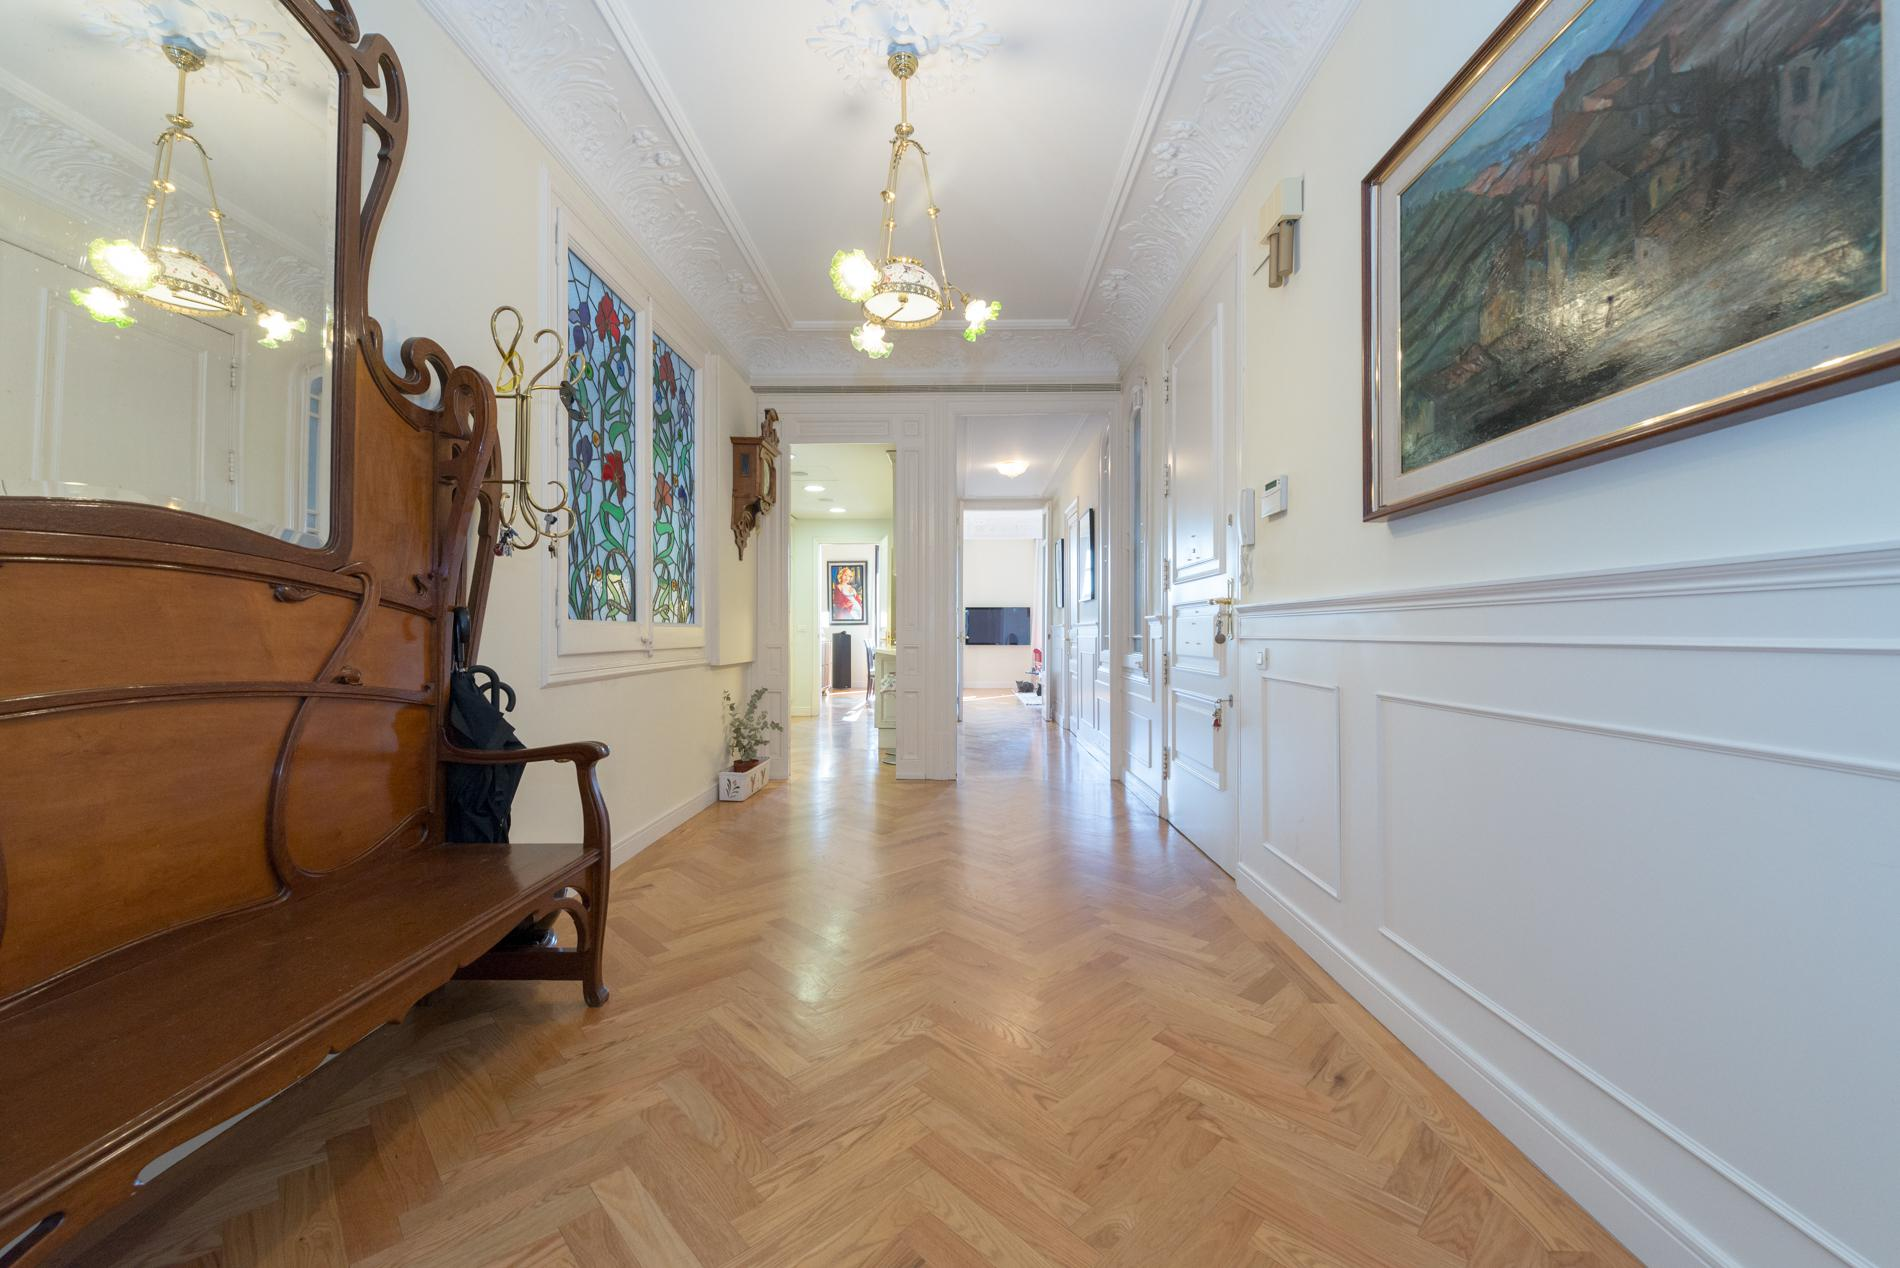 174066 Flat for sale in Eixample, Antiga Esquerre Eixample 9